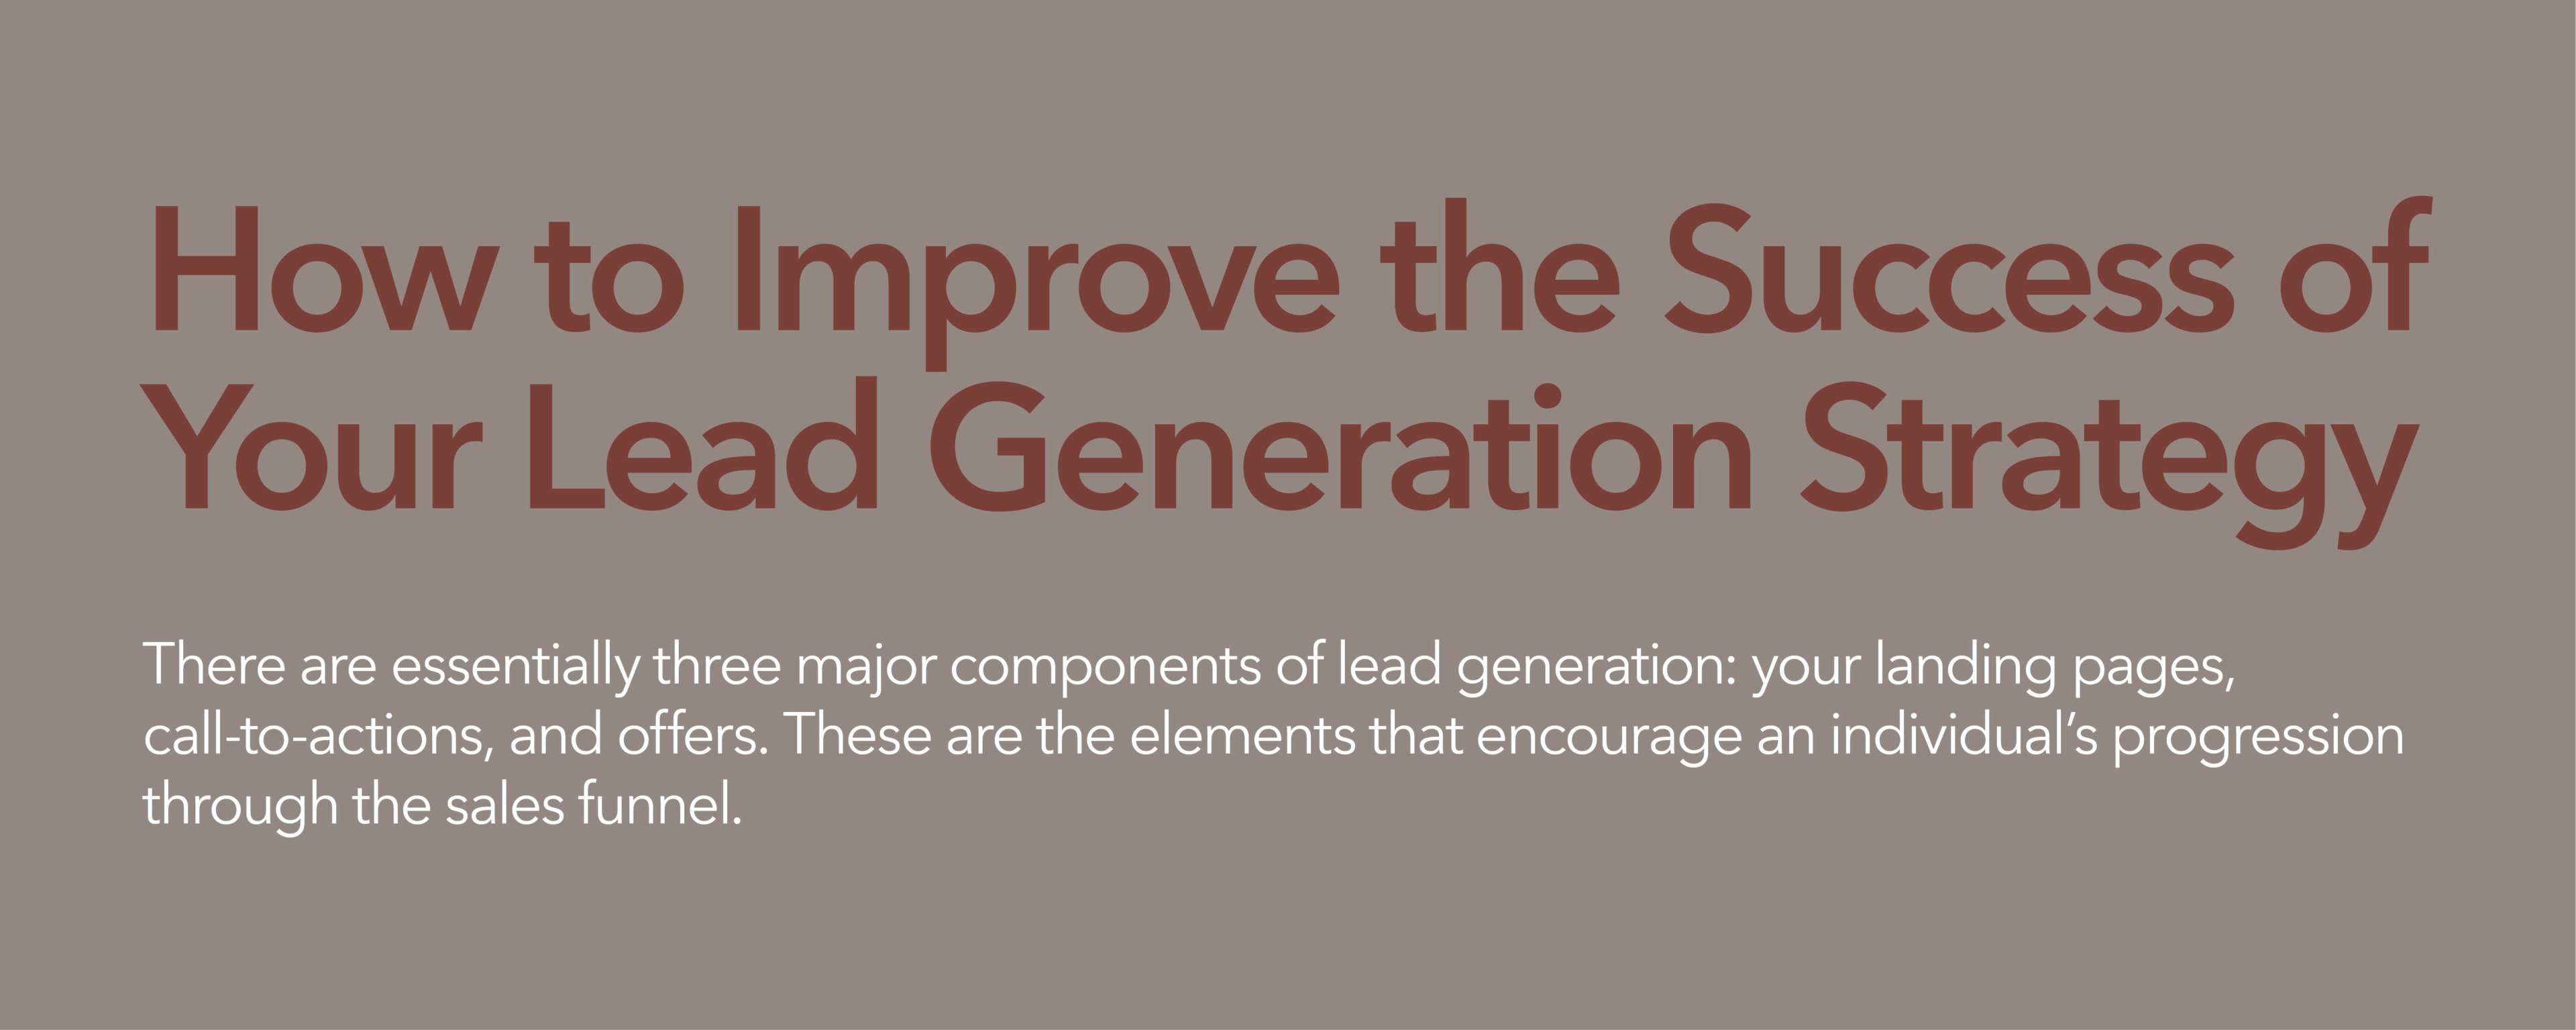 How to improve the success of your lead generation strategy. There are essentially three major components of lead generation: your landing pages, call-to-actions, and offers. These are elements that encourage an individual's progression through the sales funnel.